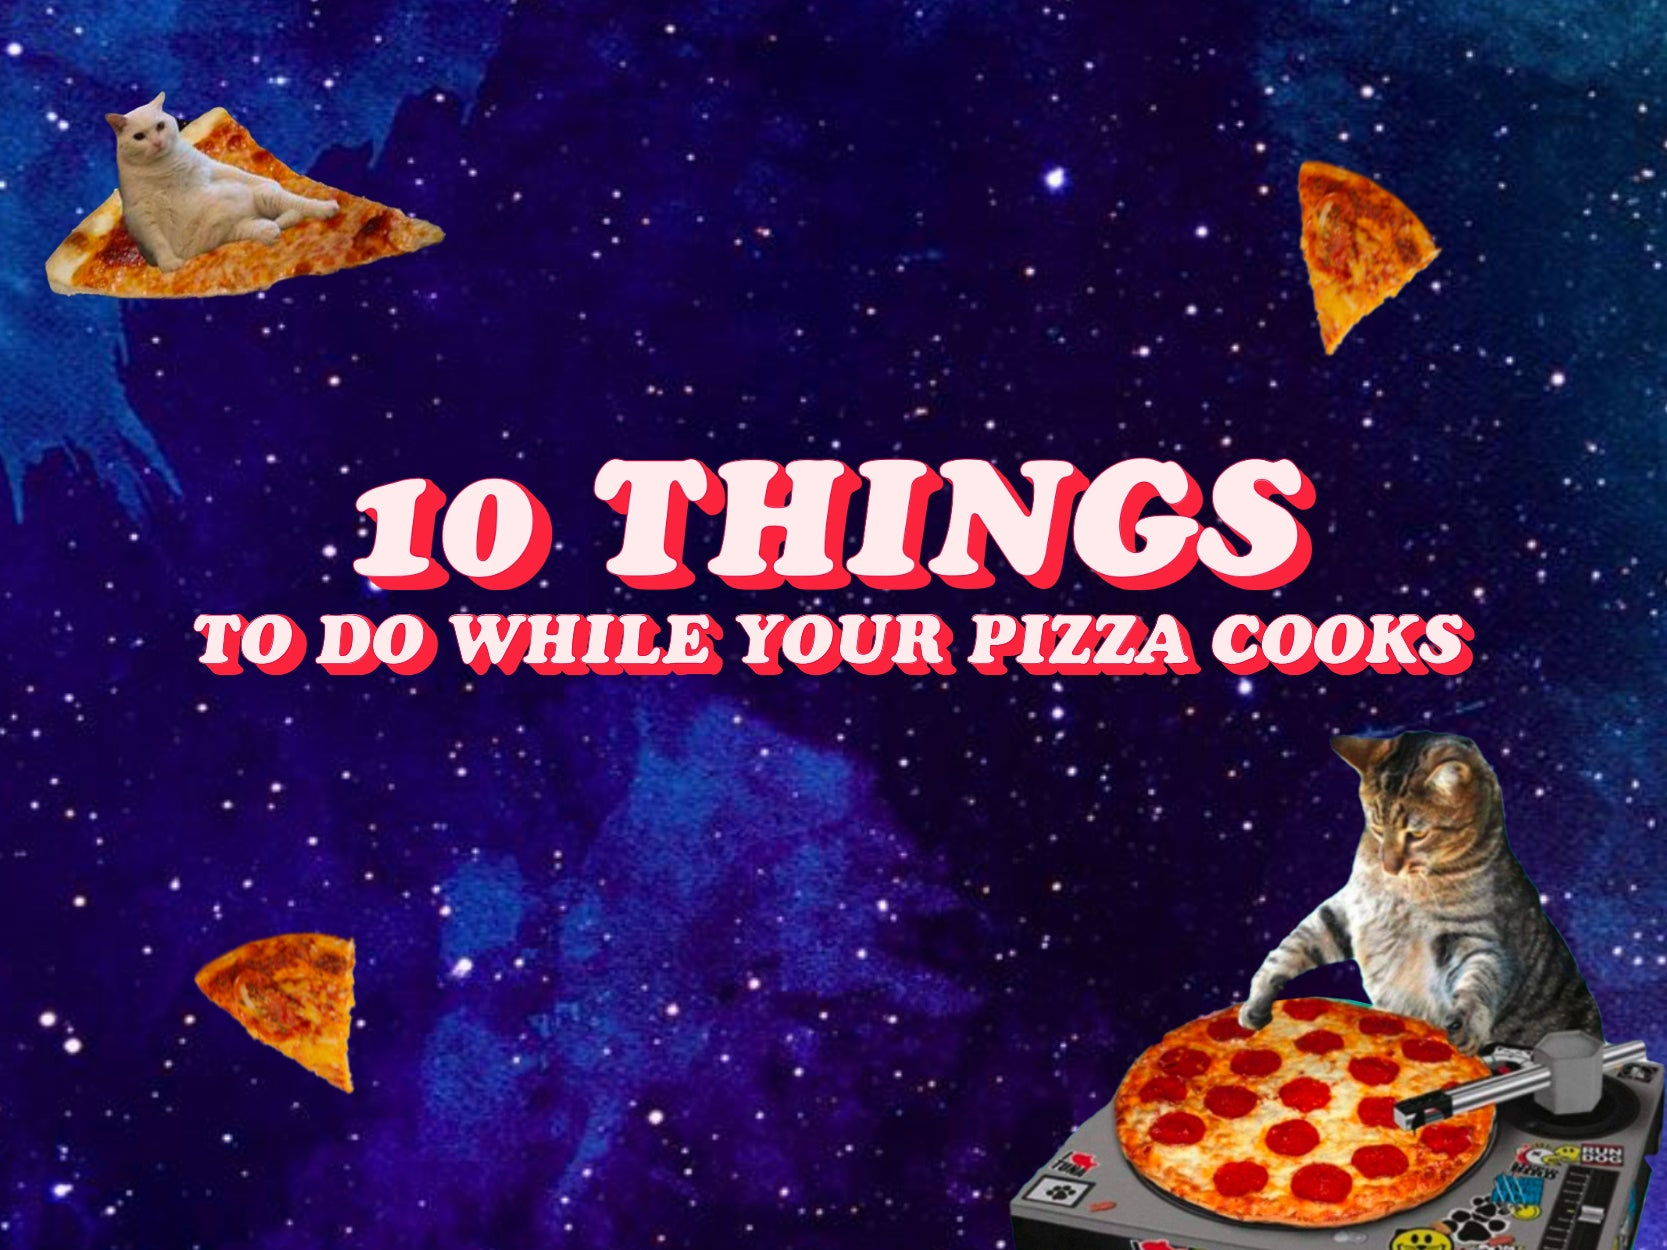 👩‍🍳 10 Things To Do While Your Pizza Cooks 👩‍🍳